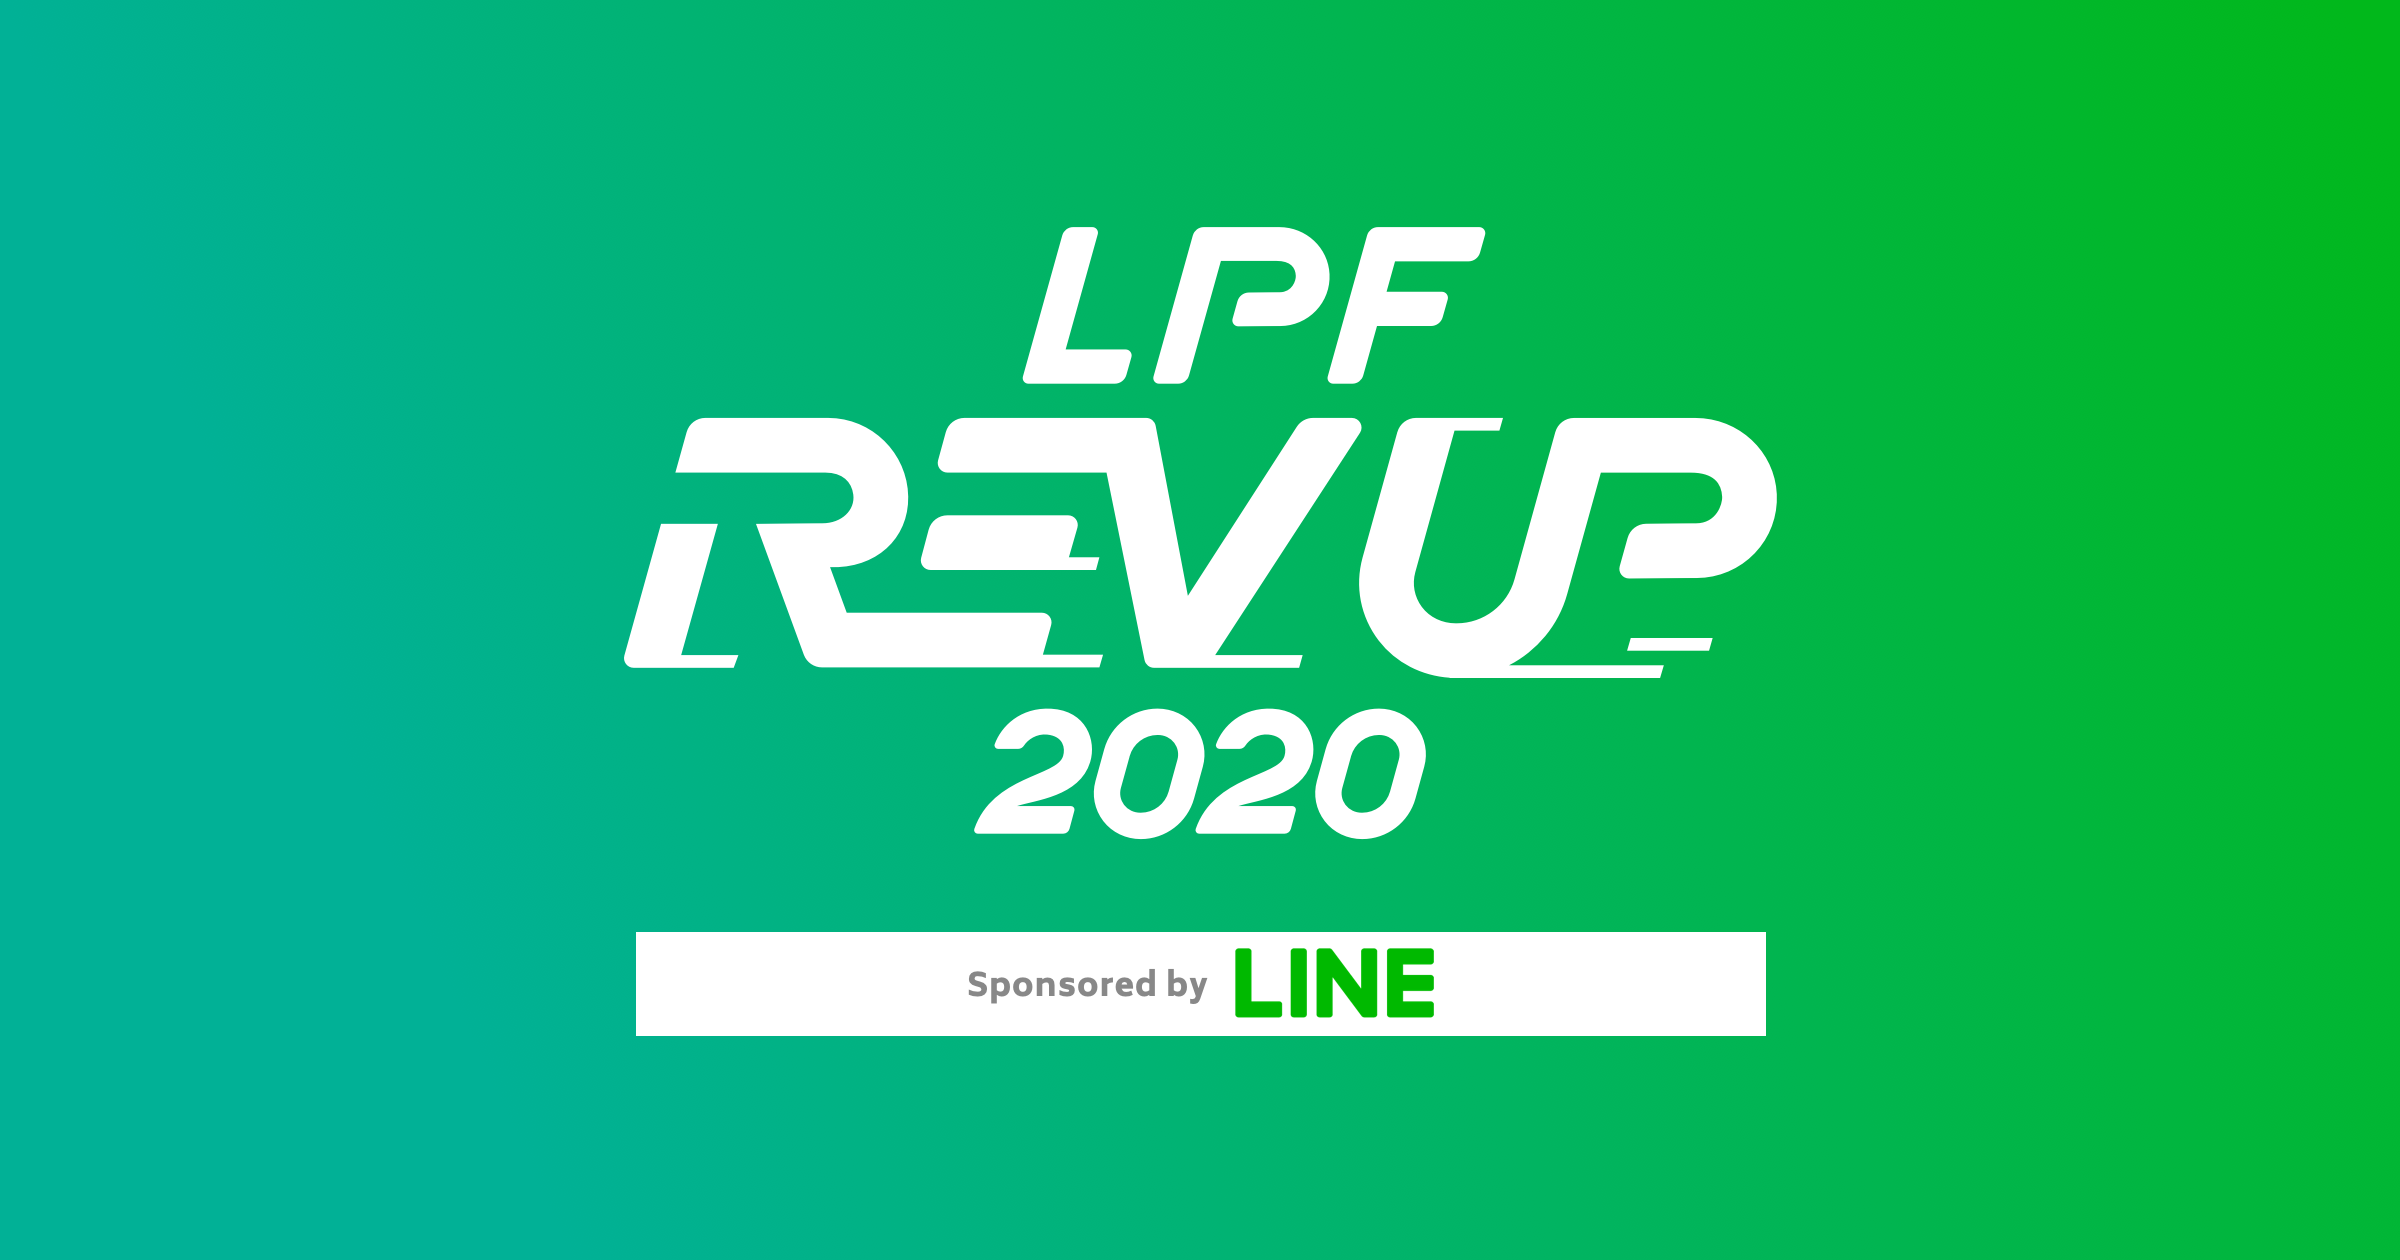 LPF REV UP 2020